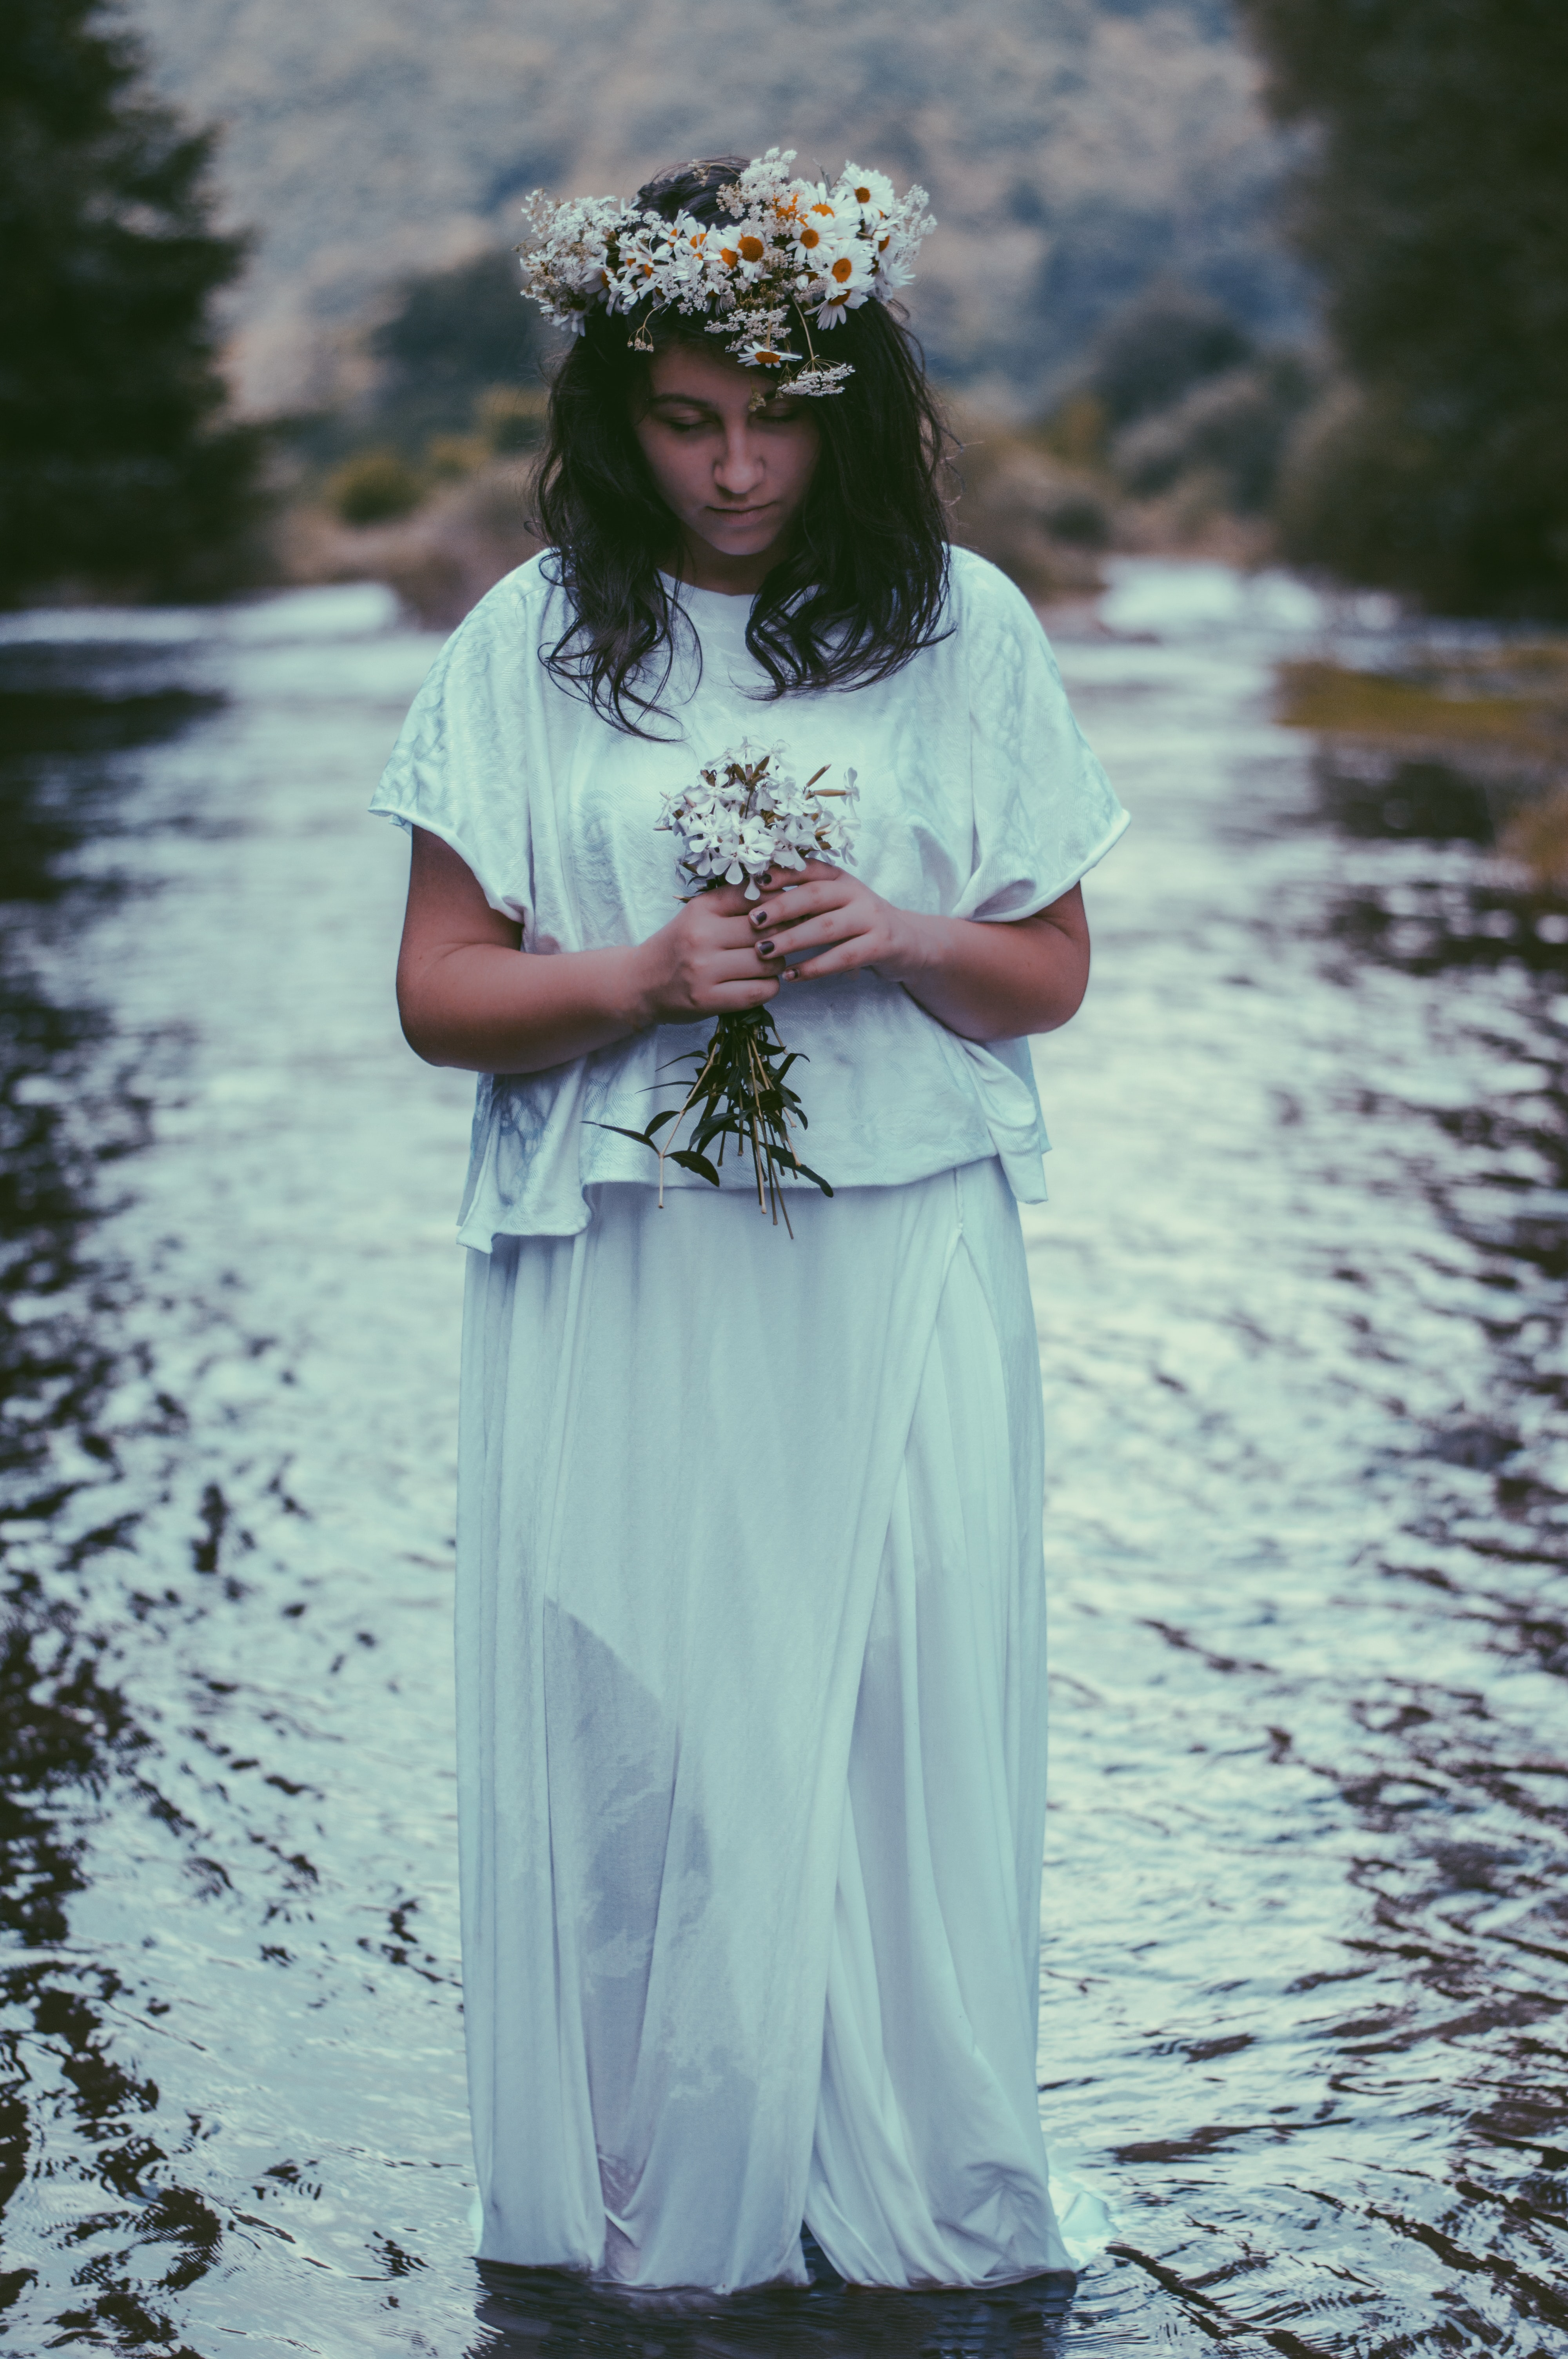 woman wearing dress and holding flower standing in body of water